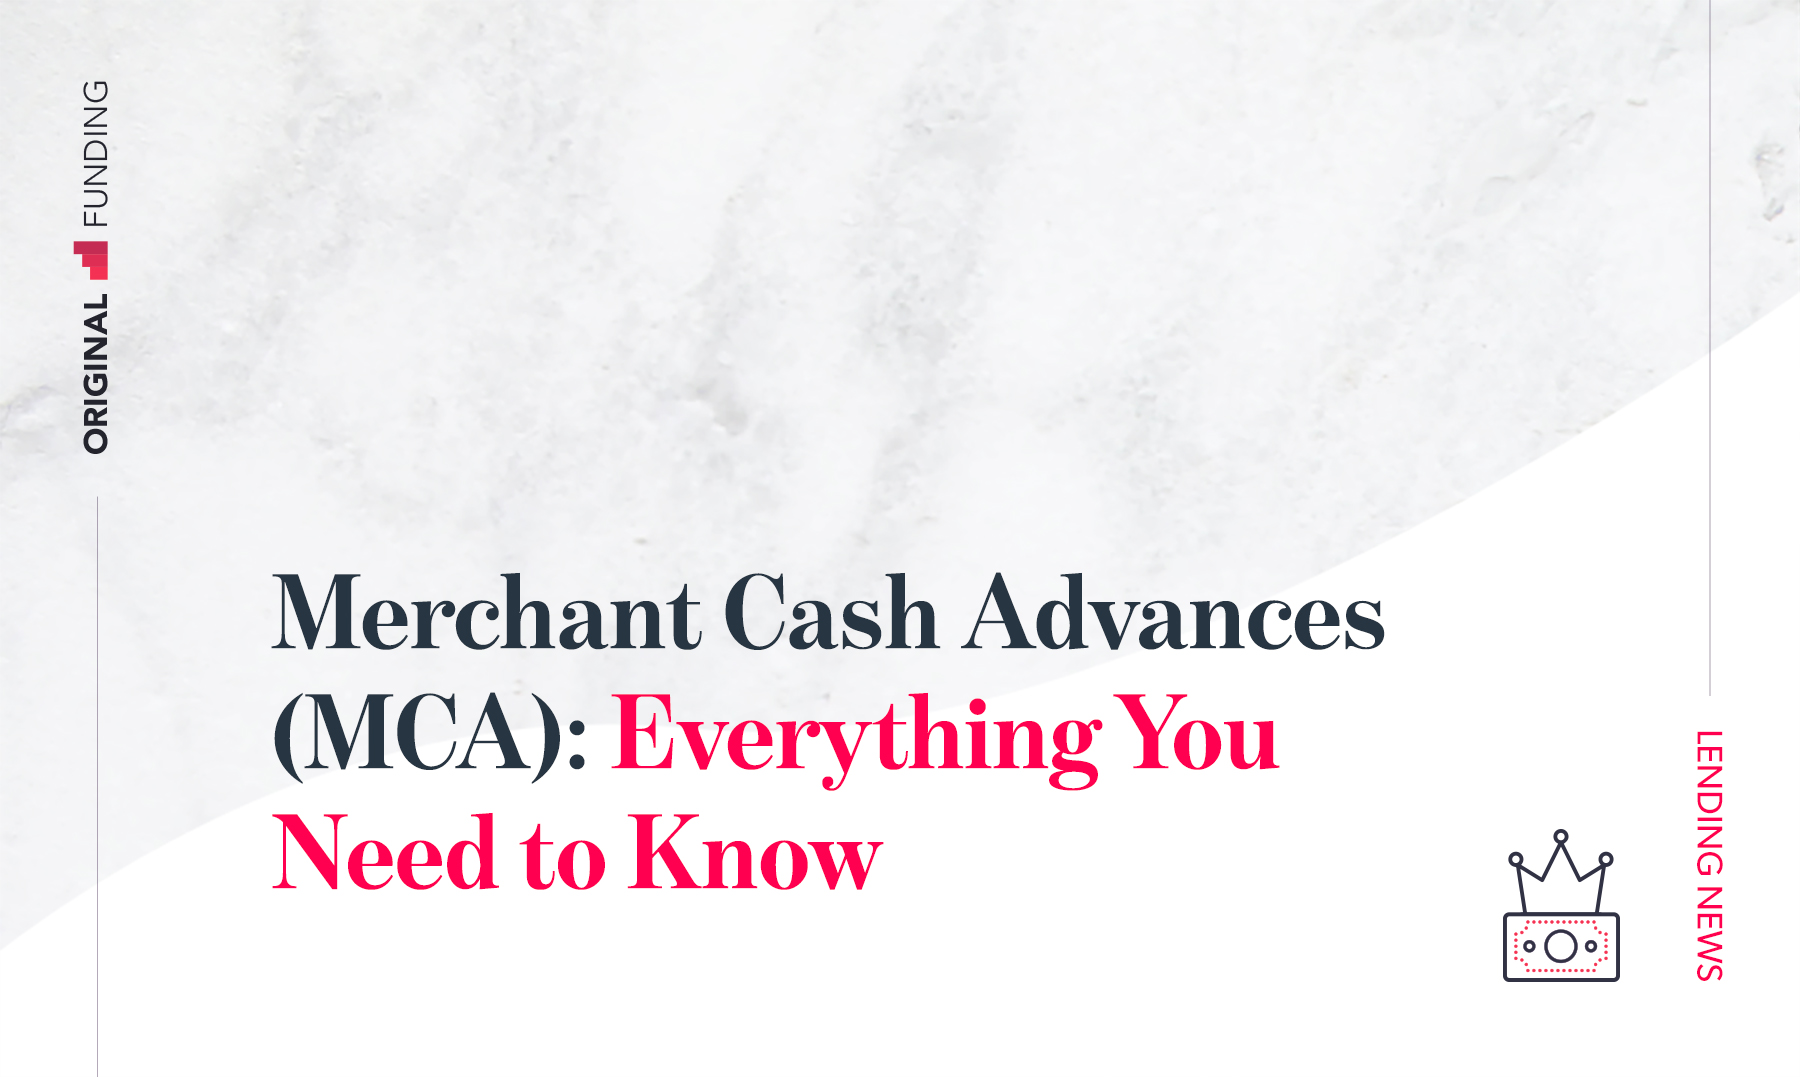 Merchant Cash Advances (MCA): Everything You Need to Know